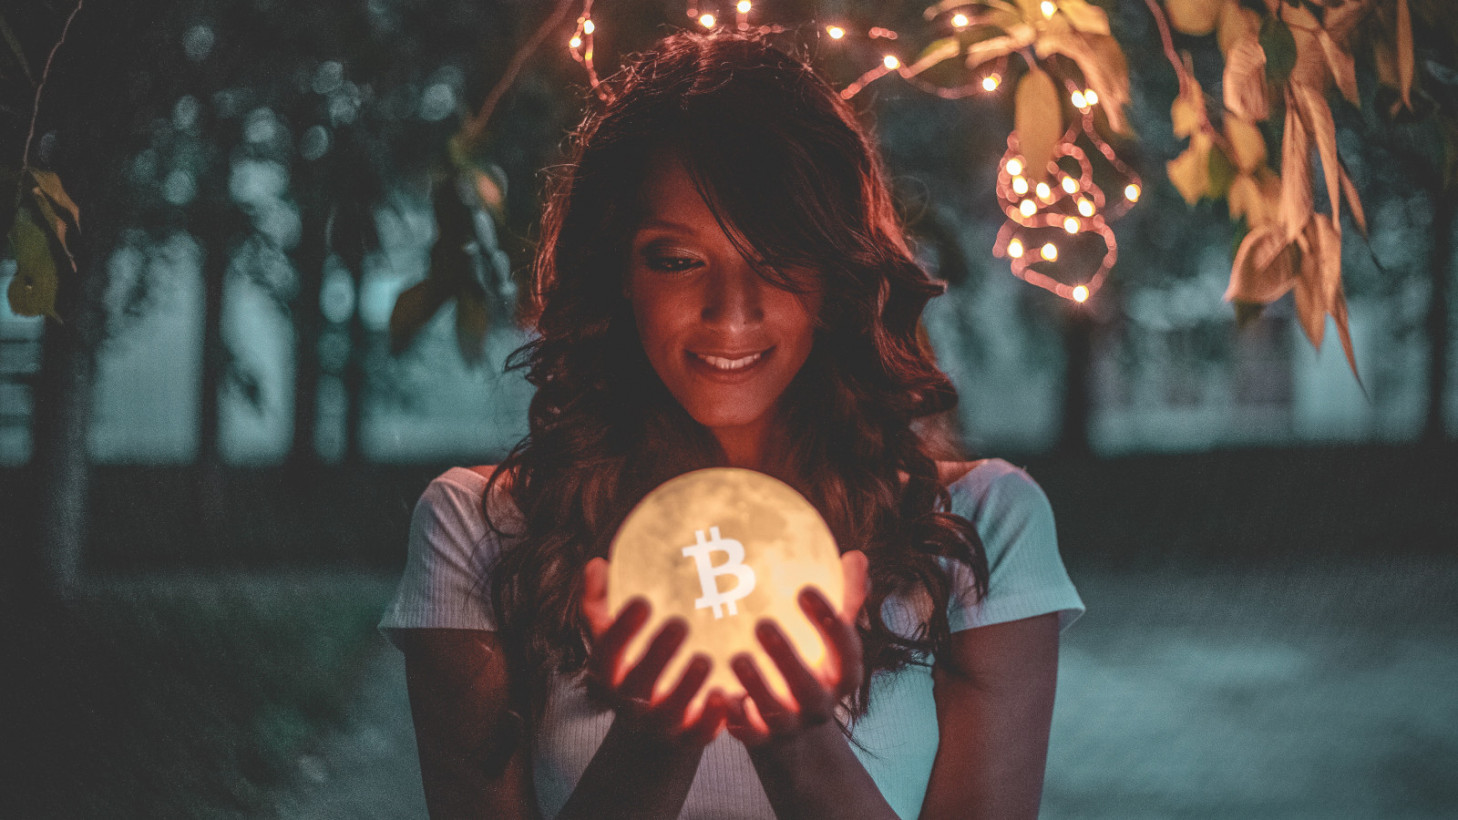 Hard Fork's blockchain and cryptocurrency expectations for 2019